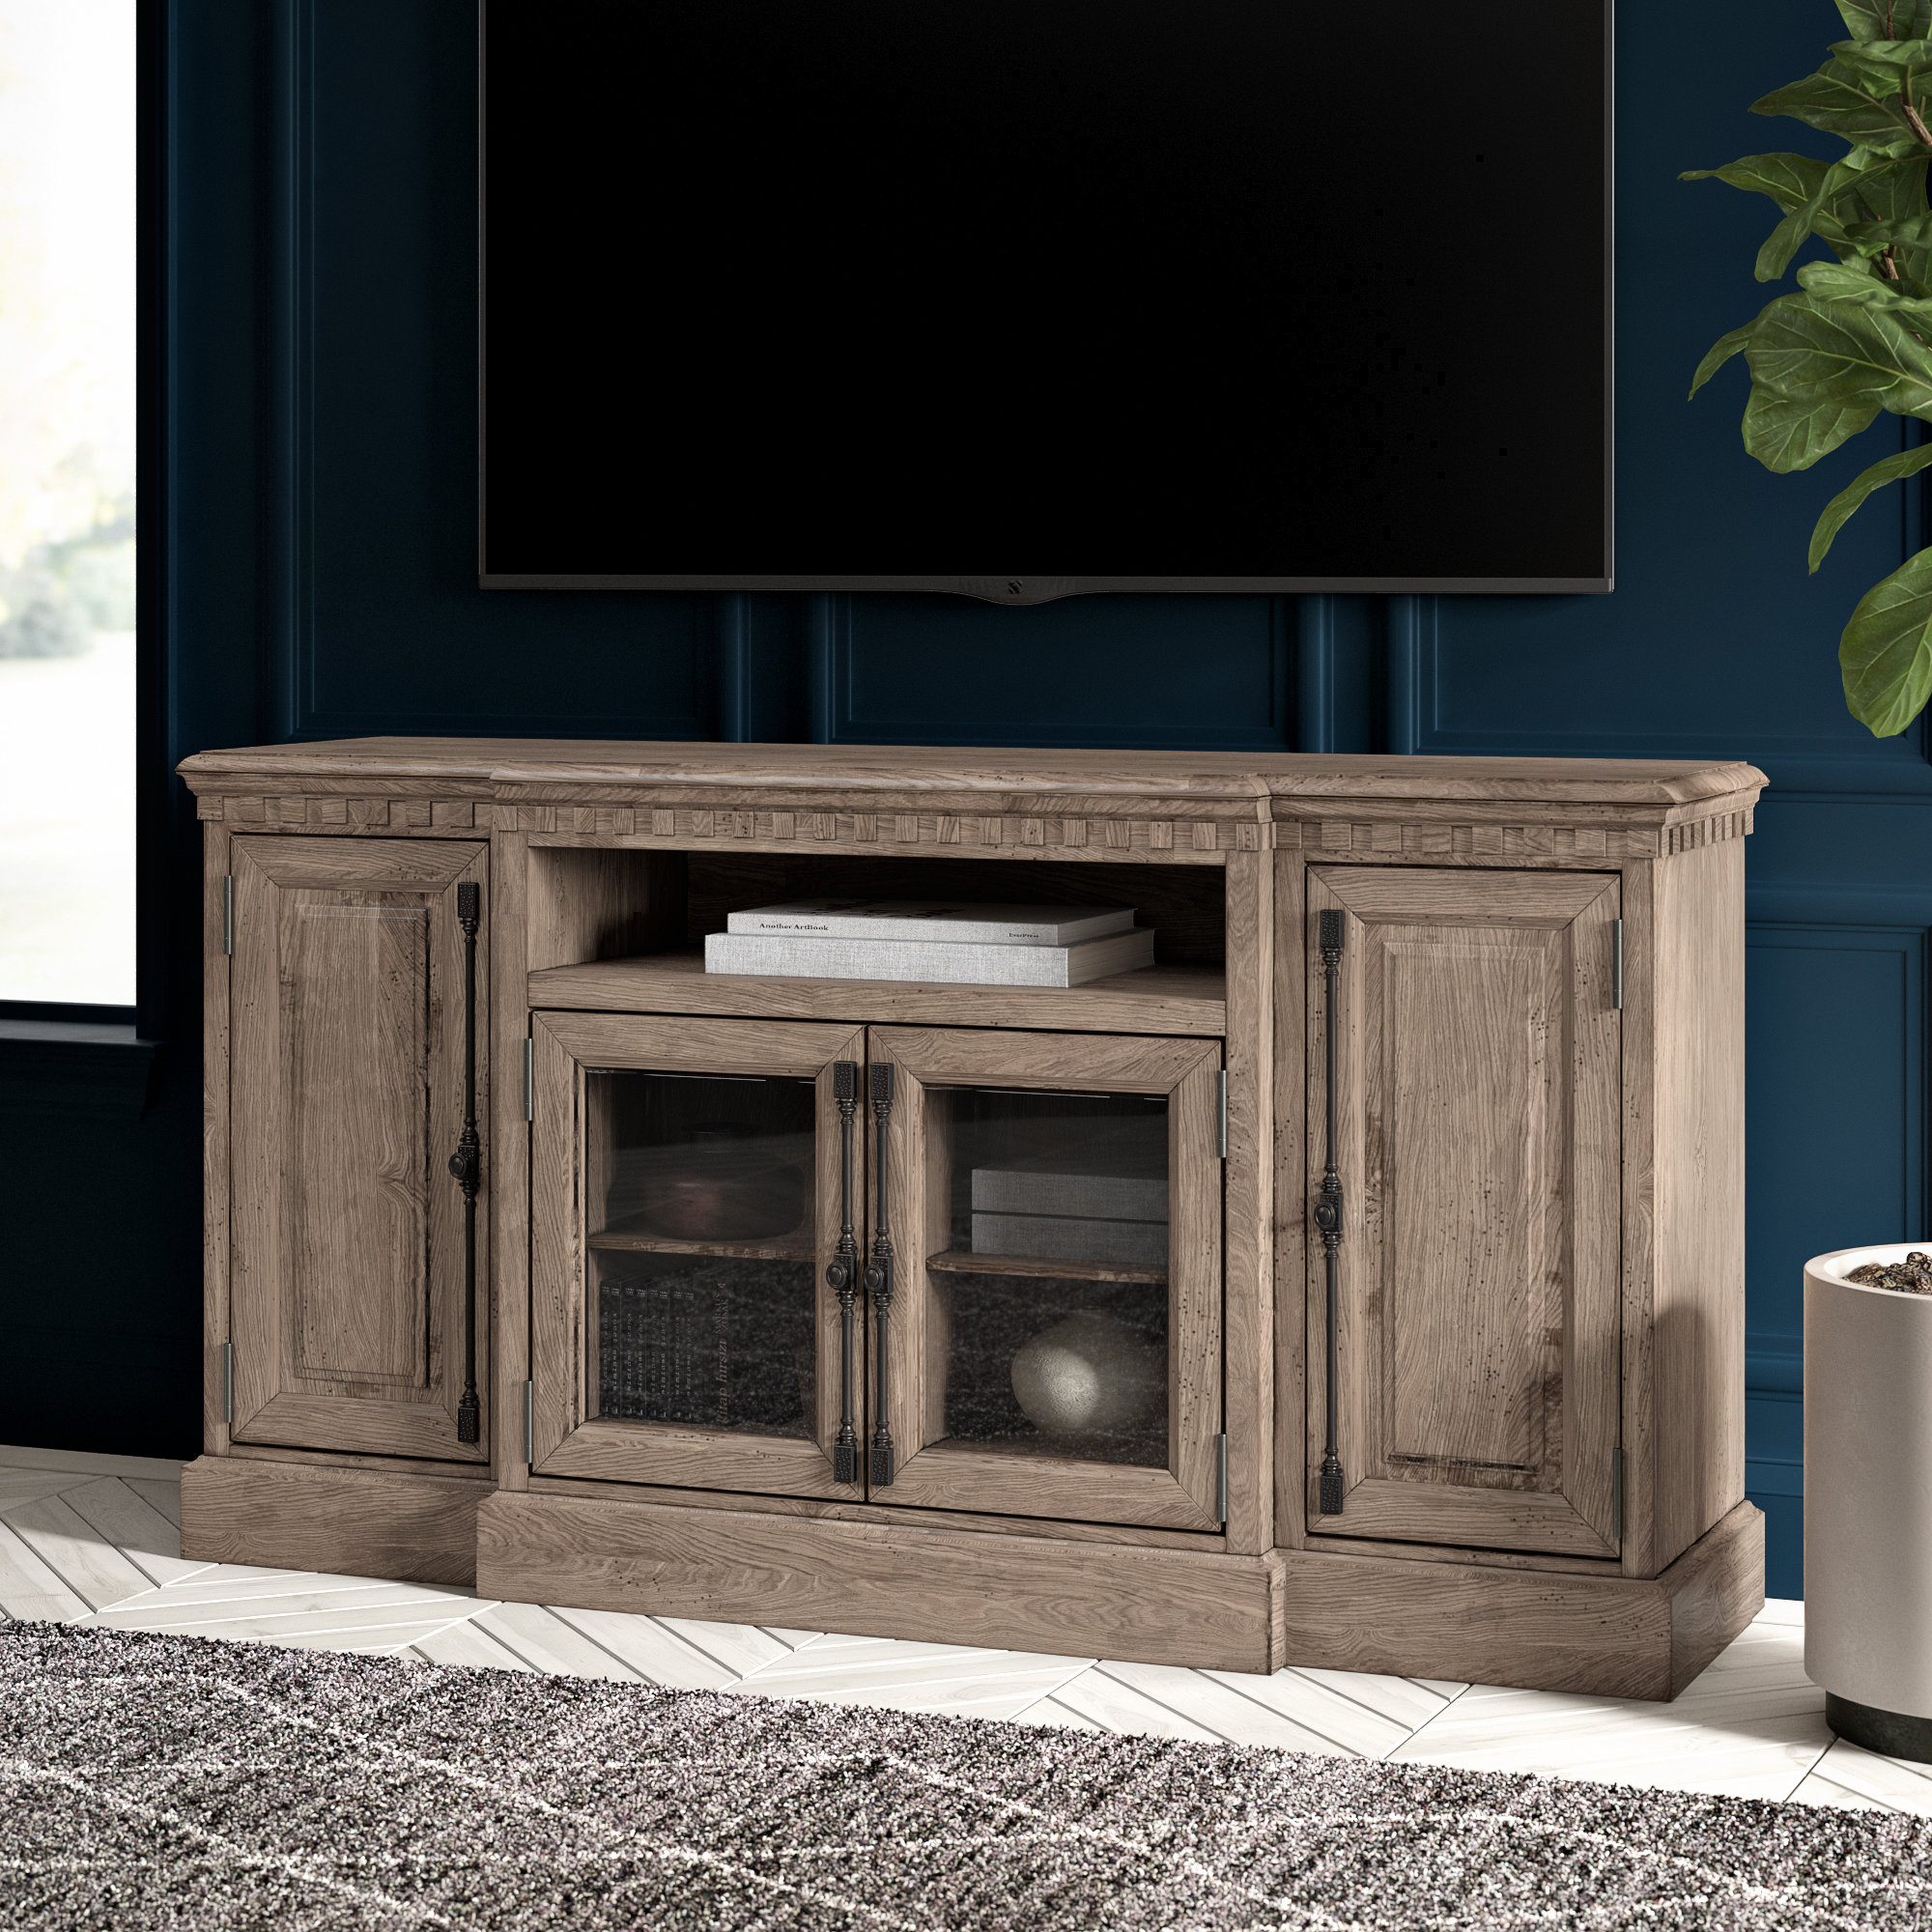 Tall (33 Inches And Larger) Tv Stands You'll Love | Wayfair.ca in Wyatt 68 Inch Tv Stands (Image 18 of 30)